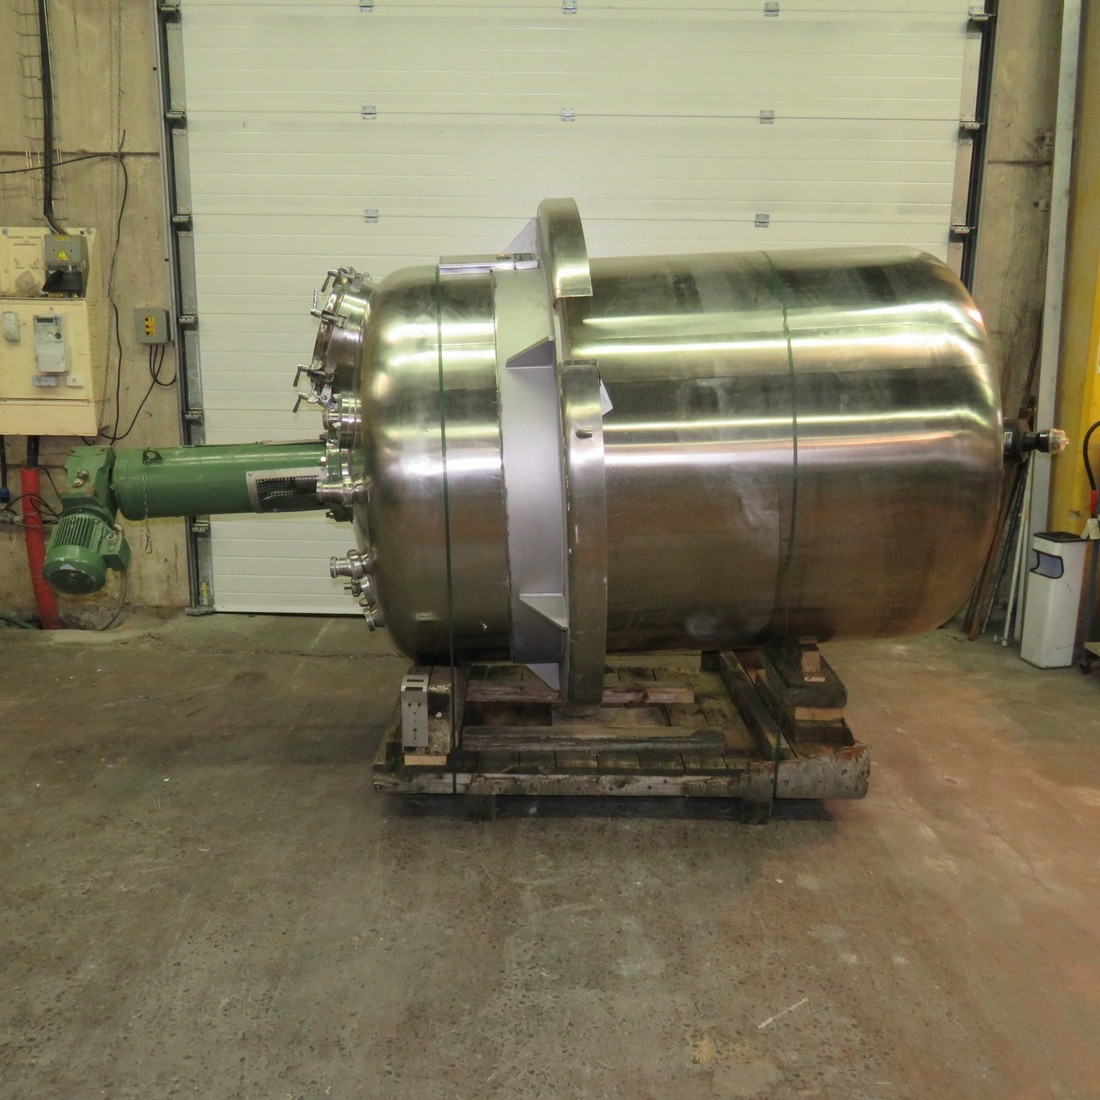 R6MA6152 Stainless steel ADM Mixing tank - 3000 Liters - Hp1.5